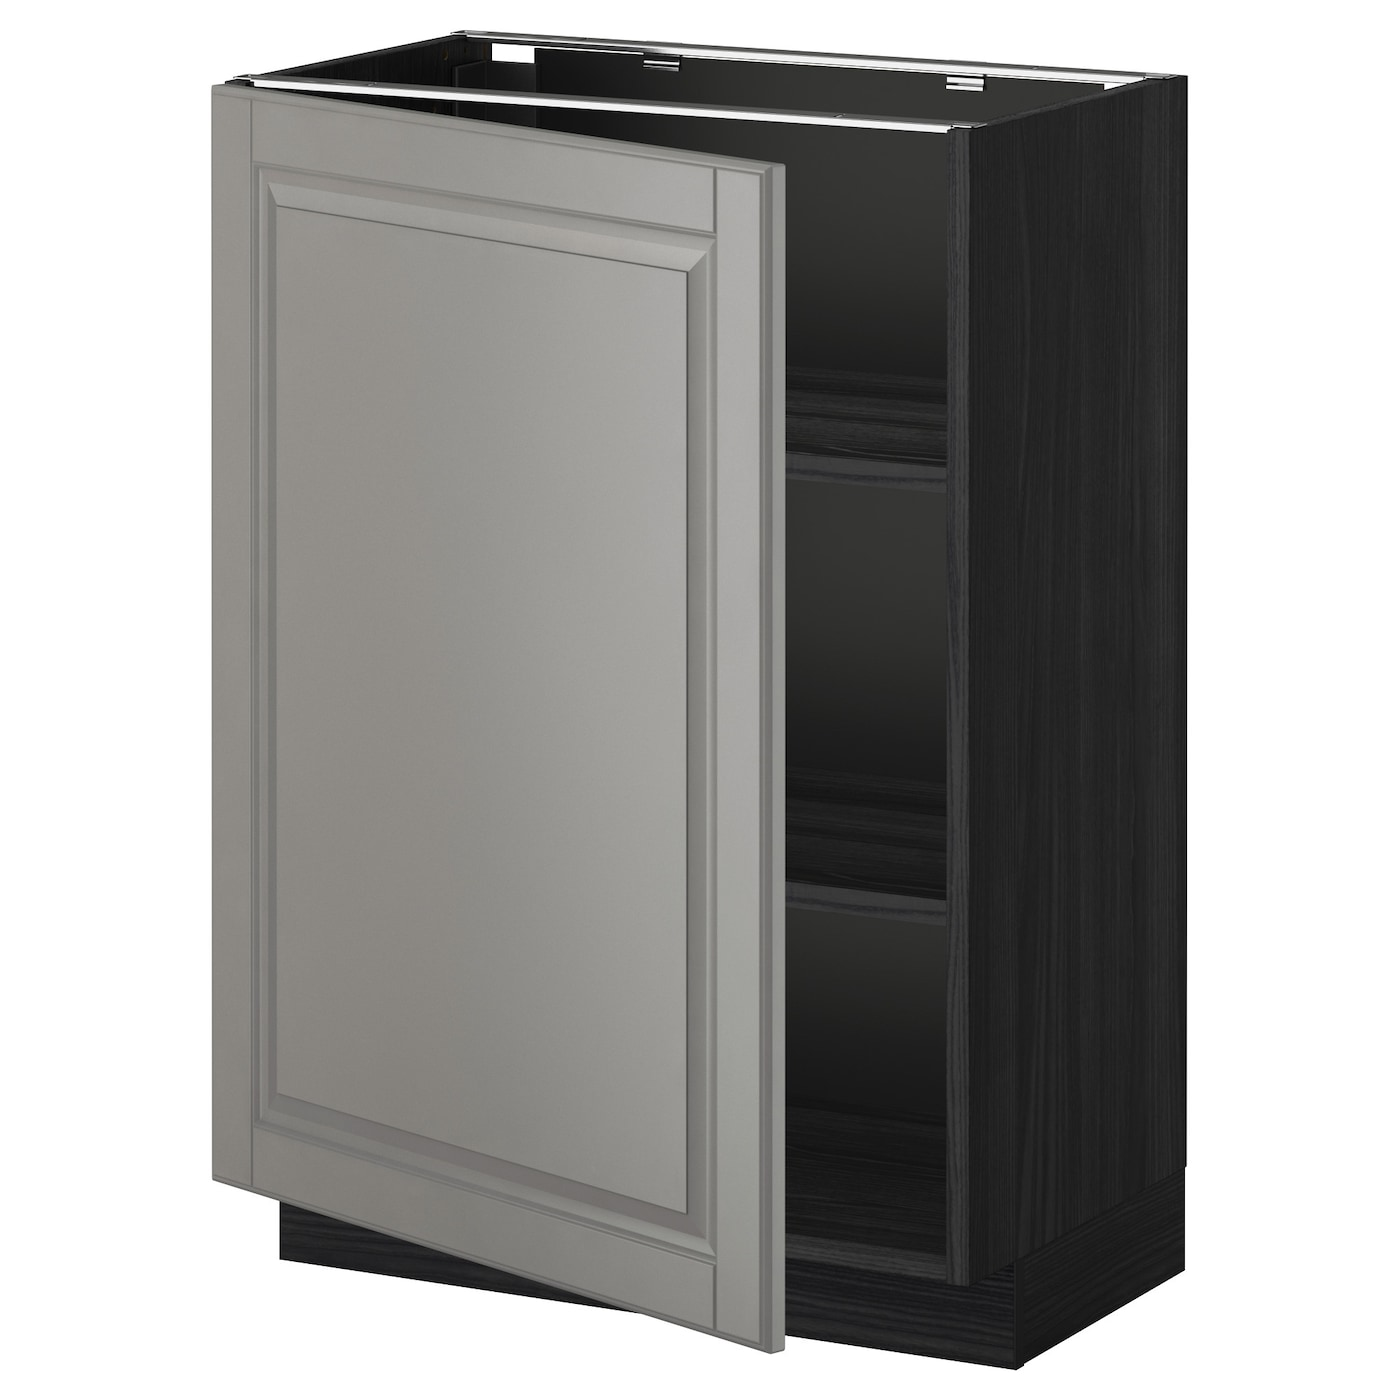 IKEA METOD base cabinet with shelves You can choose to mount the door on the right or left side.